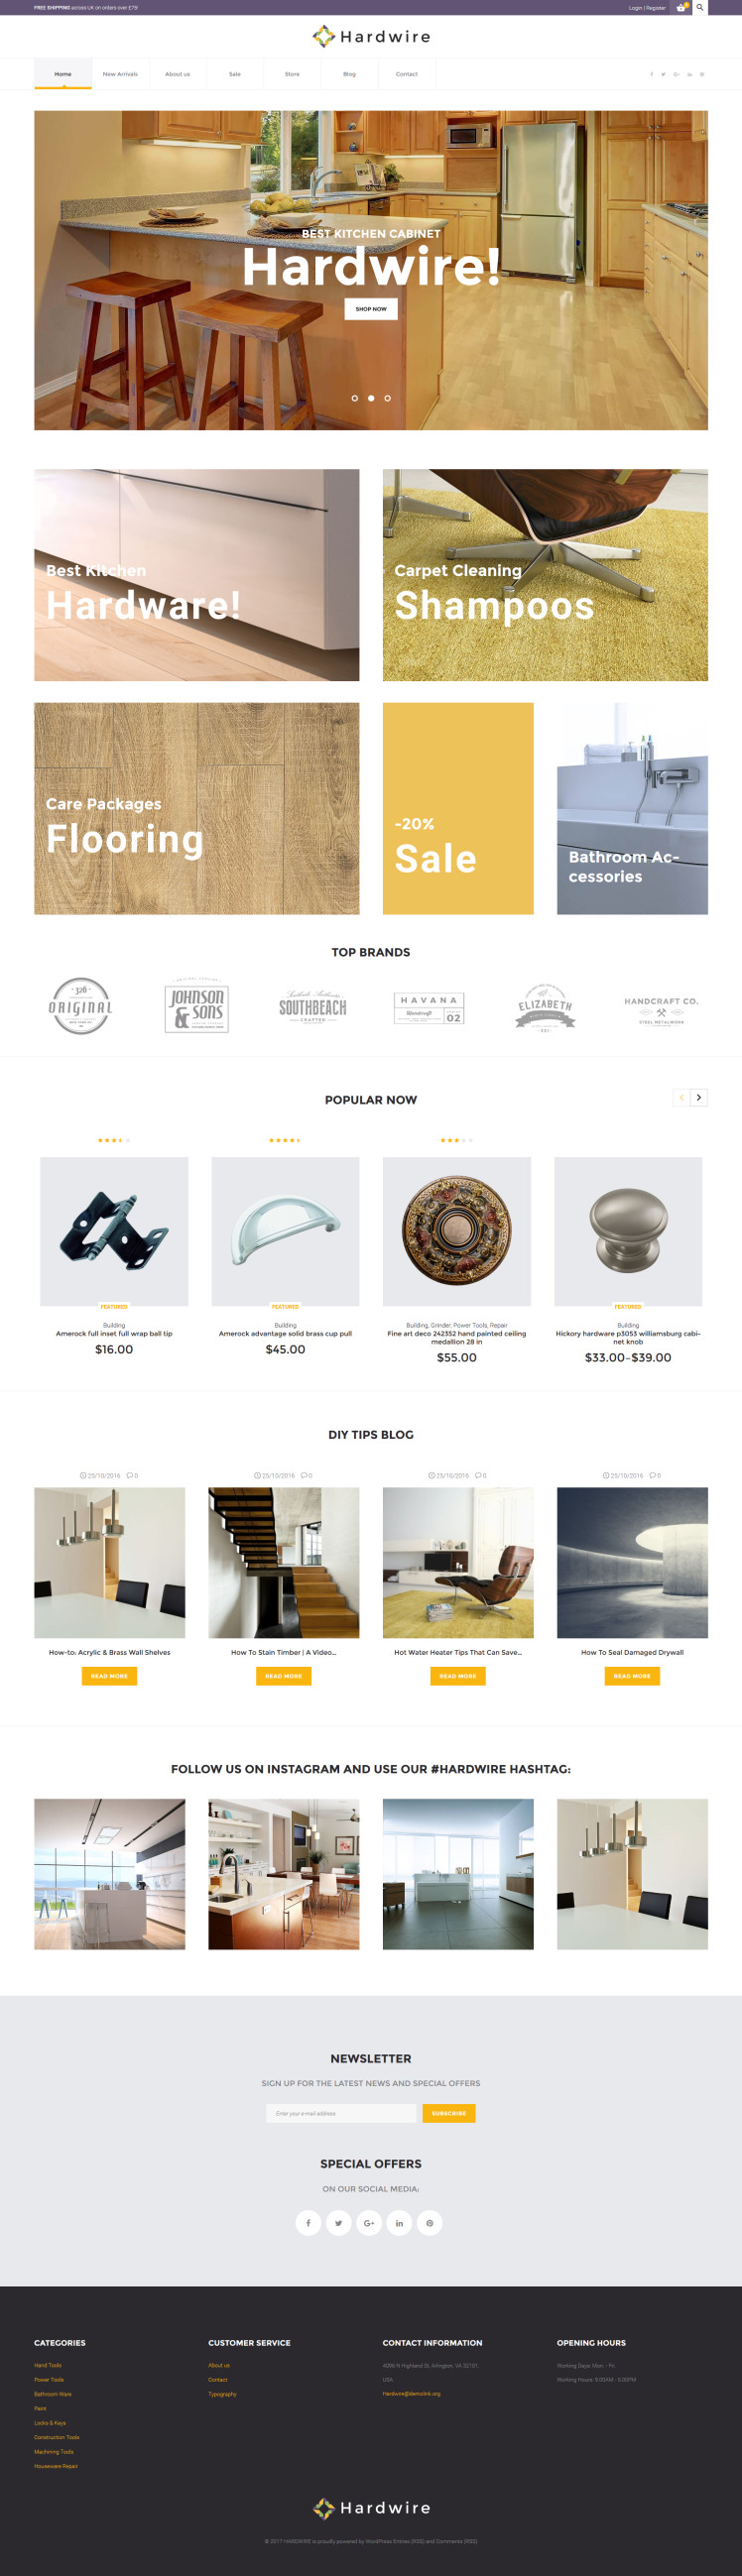 Hardwire Household Hardware Store Responsive WooCommerce Themes